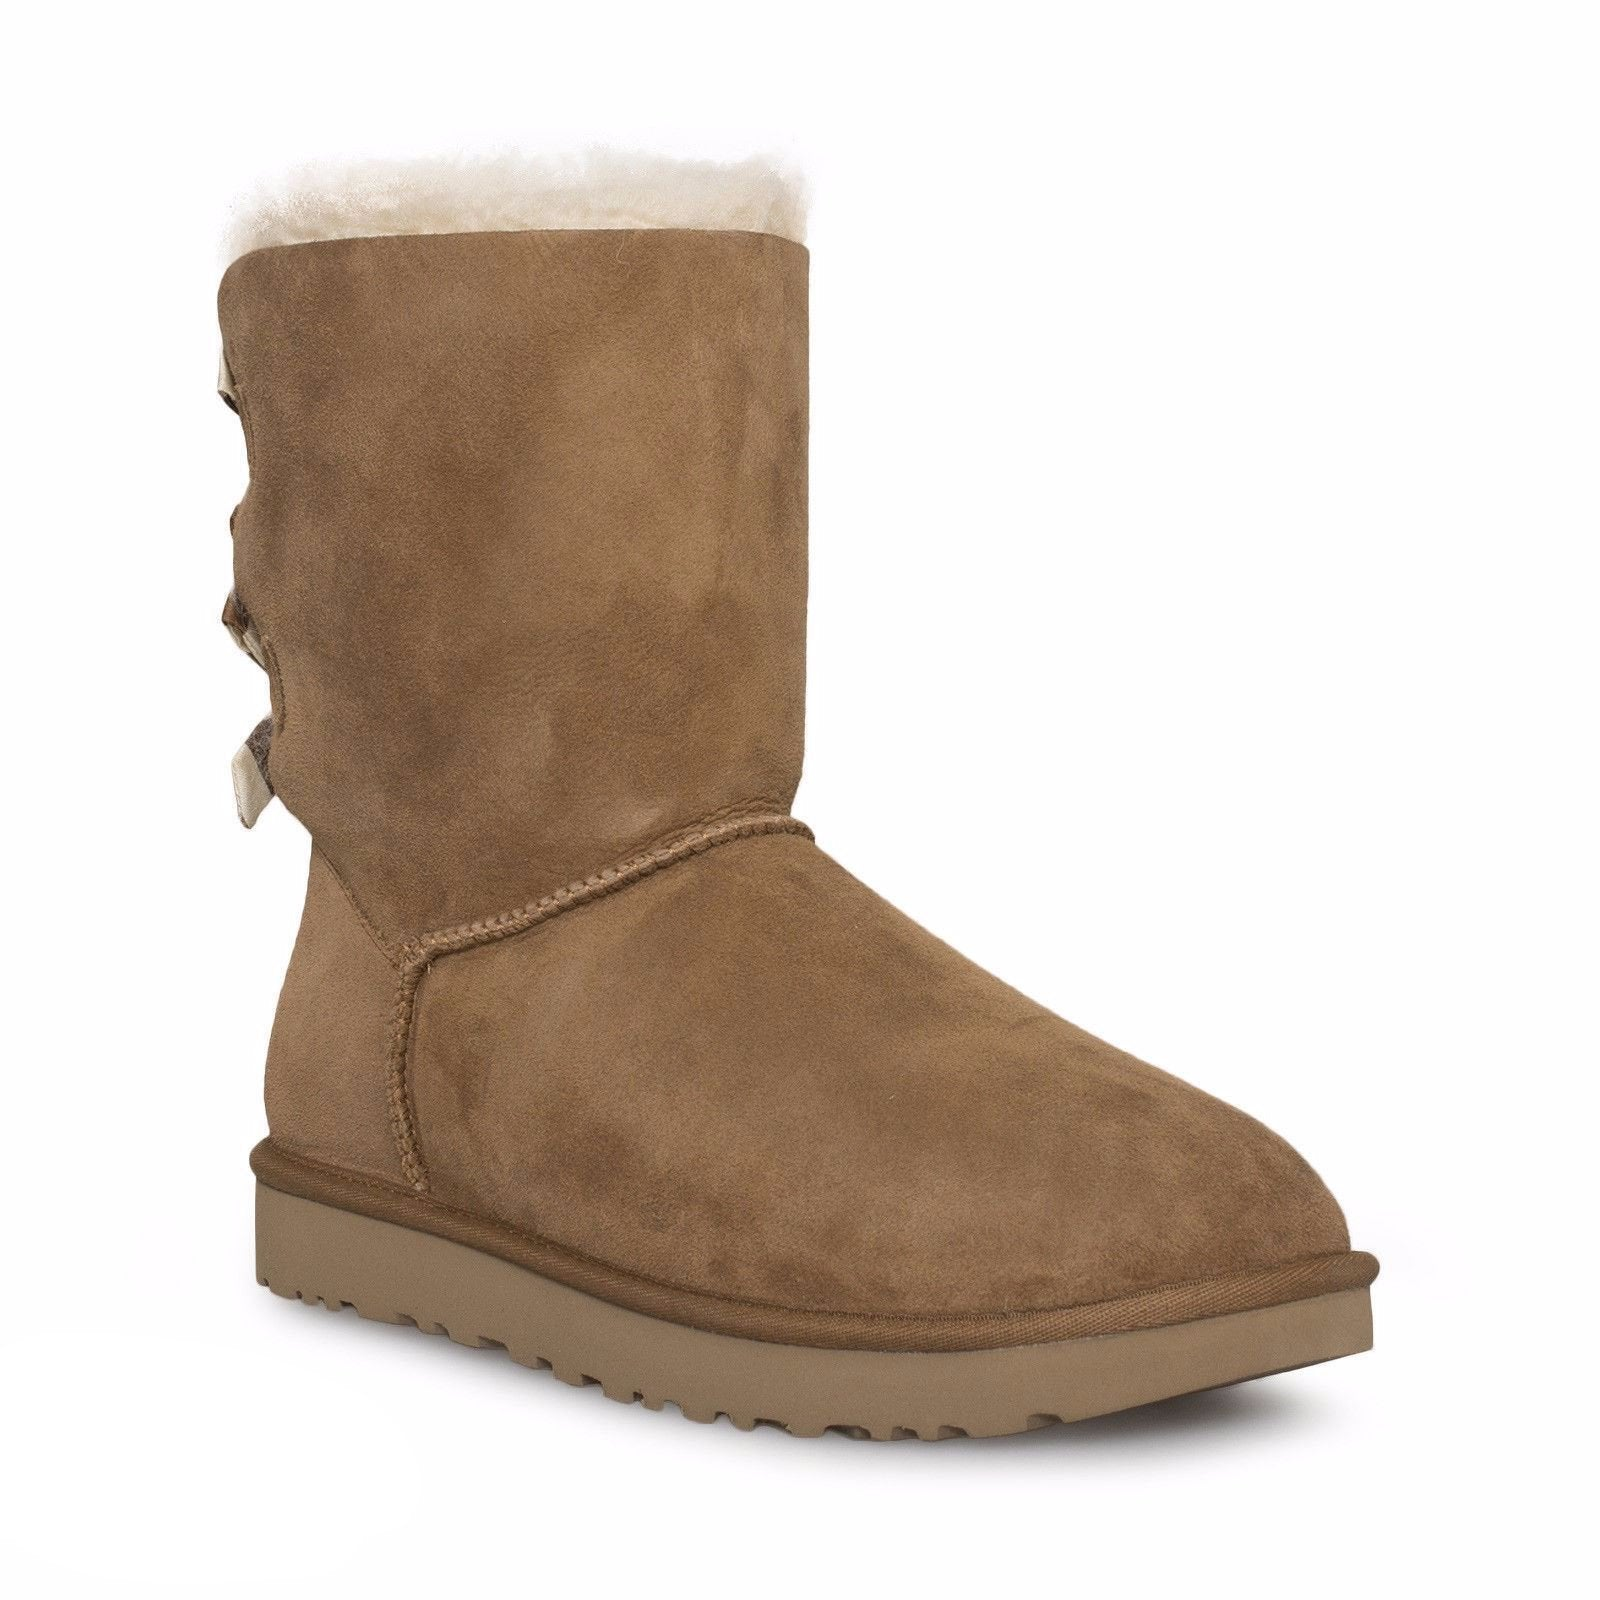 eaaf28ade50 Women's Boots Tagged